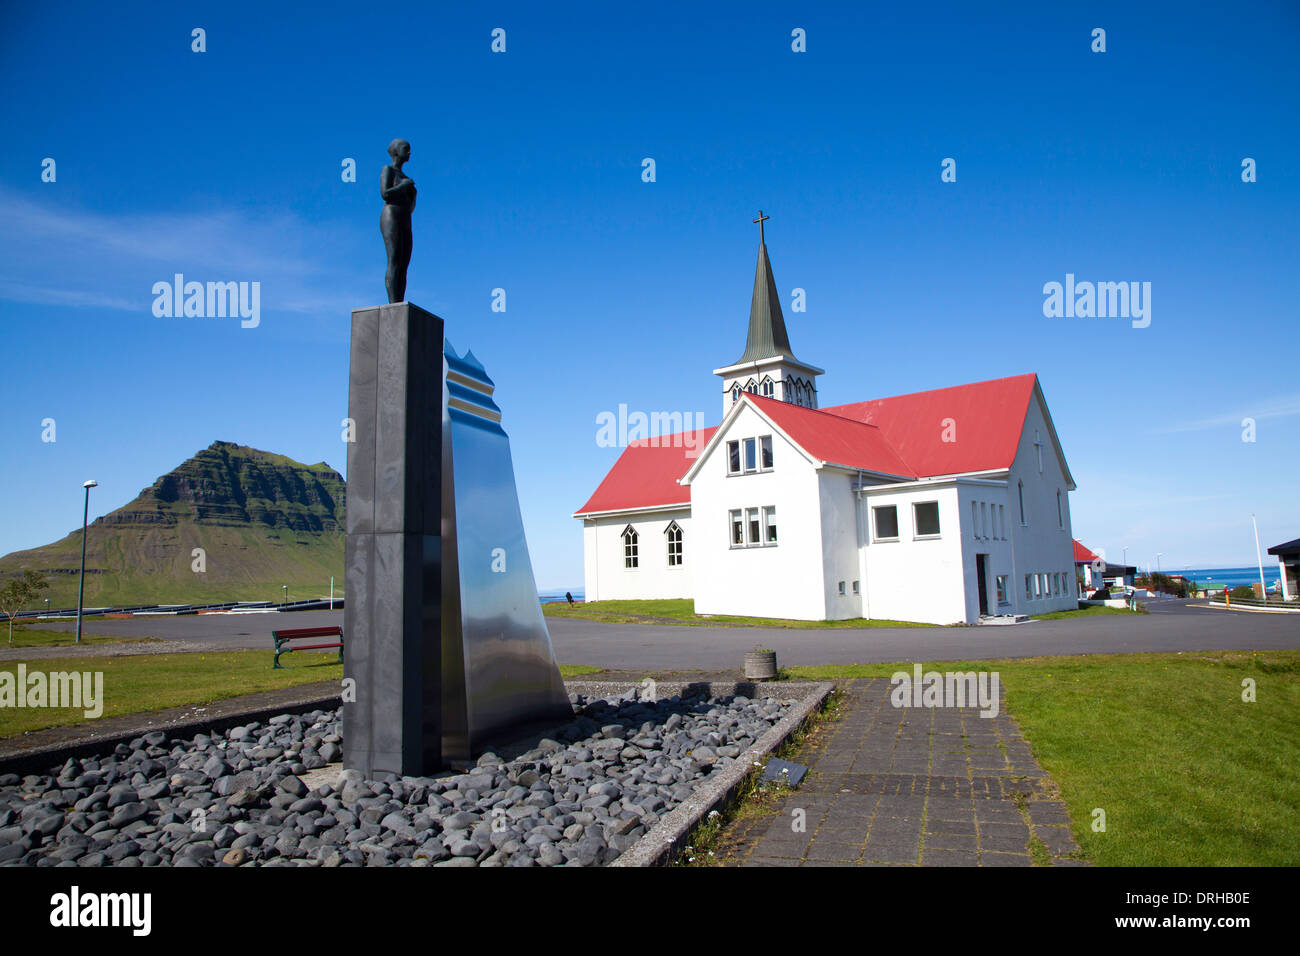 The modern 1961 church in Grundarfjordur, Iceland. The sculpture in the foreground is called 'Syn'. - Stock Image